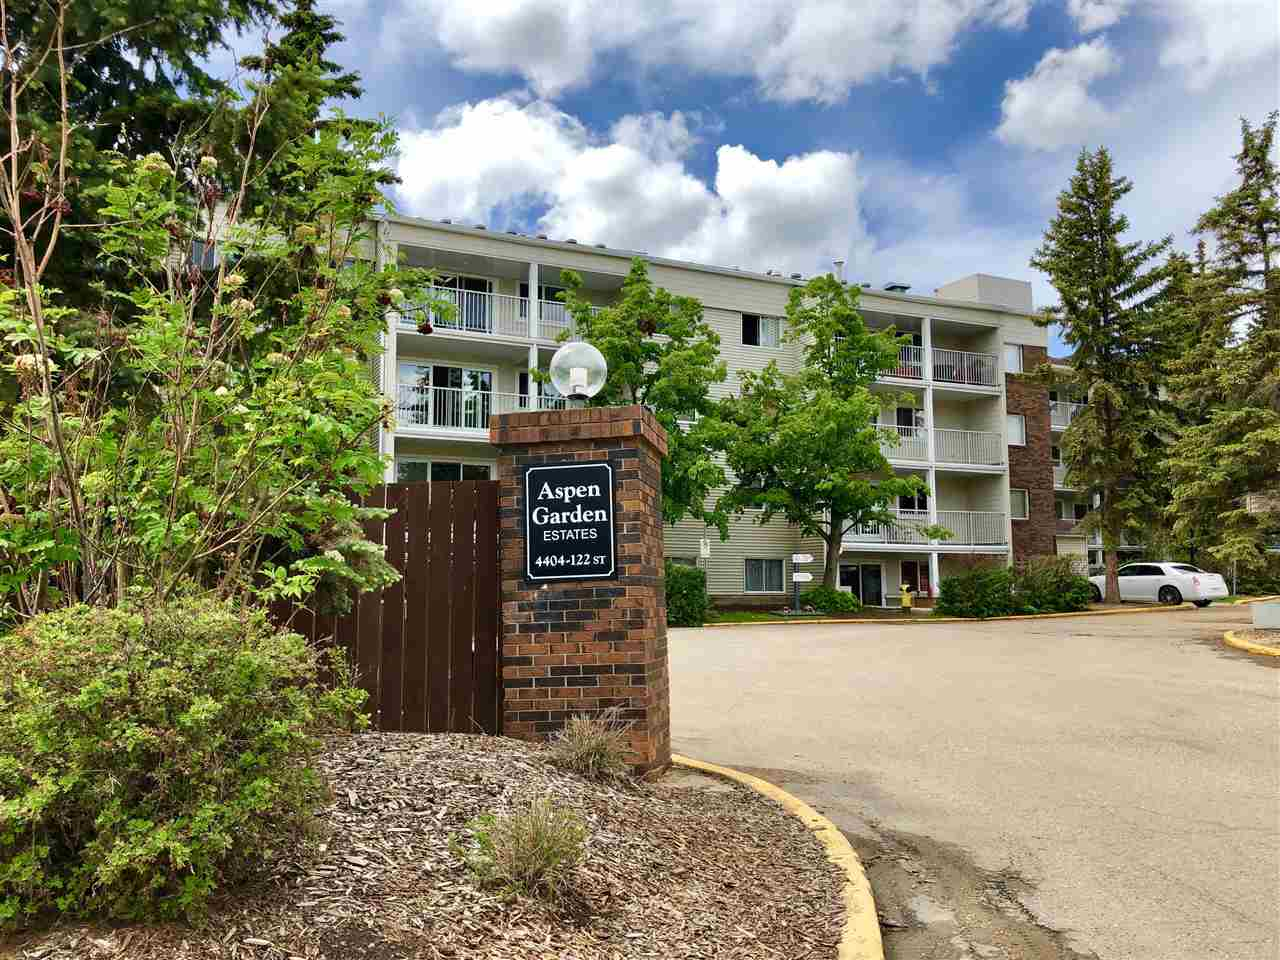 MLS® listing #E4161499 for sale located at 217 4404 122 Street